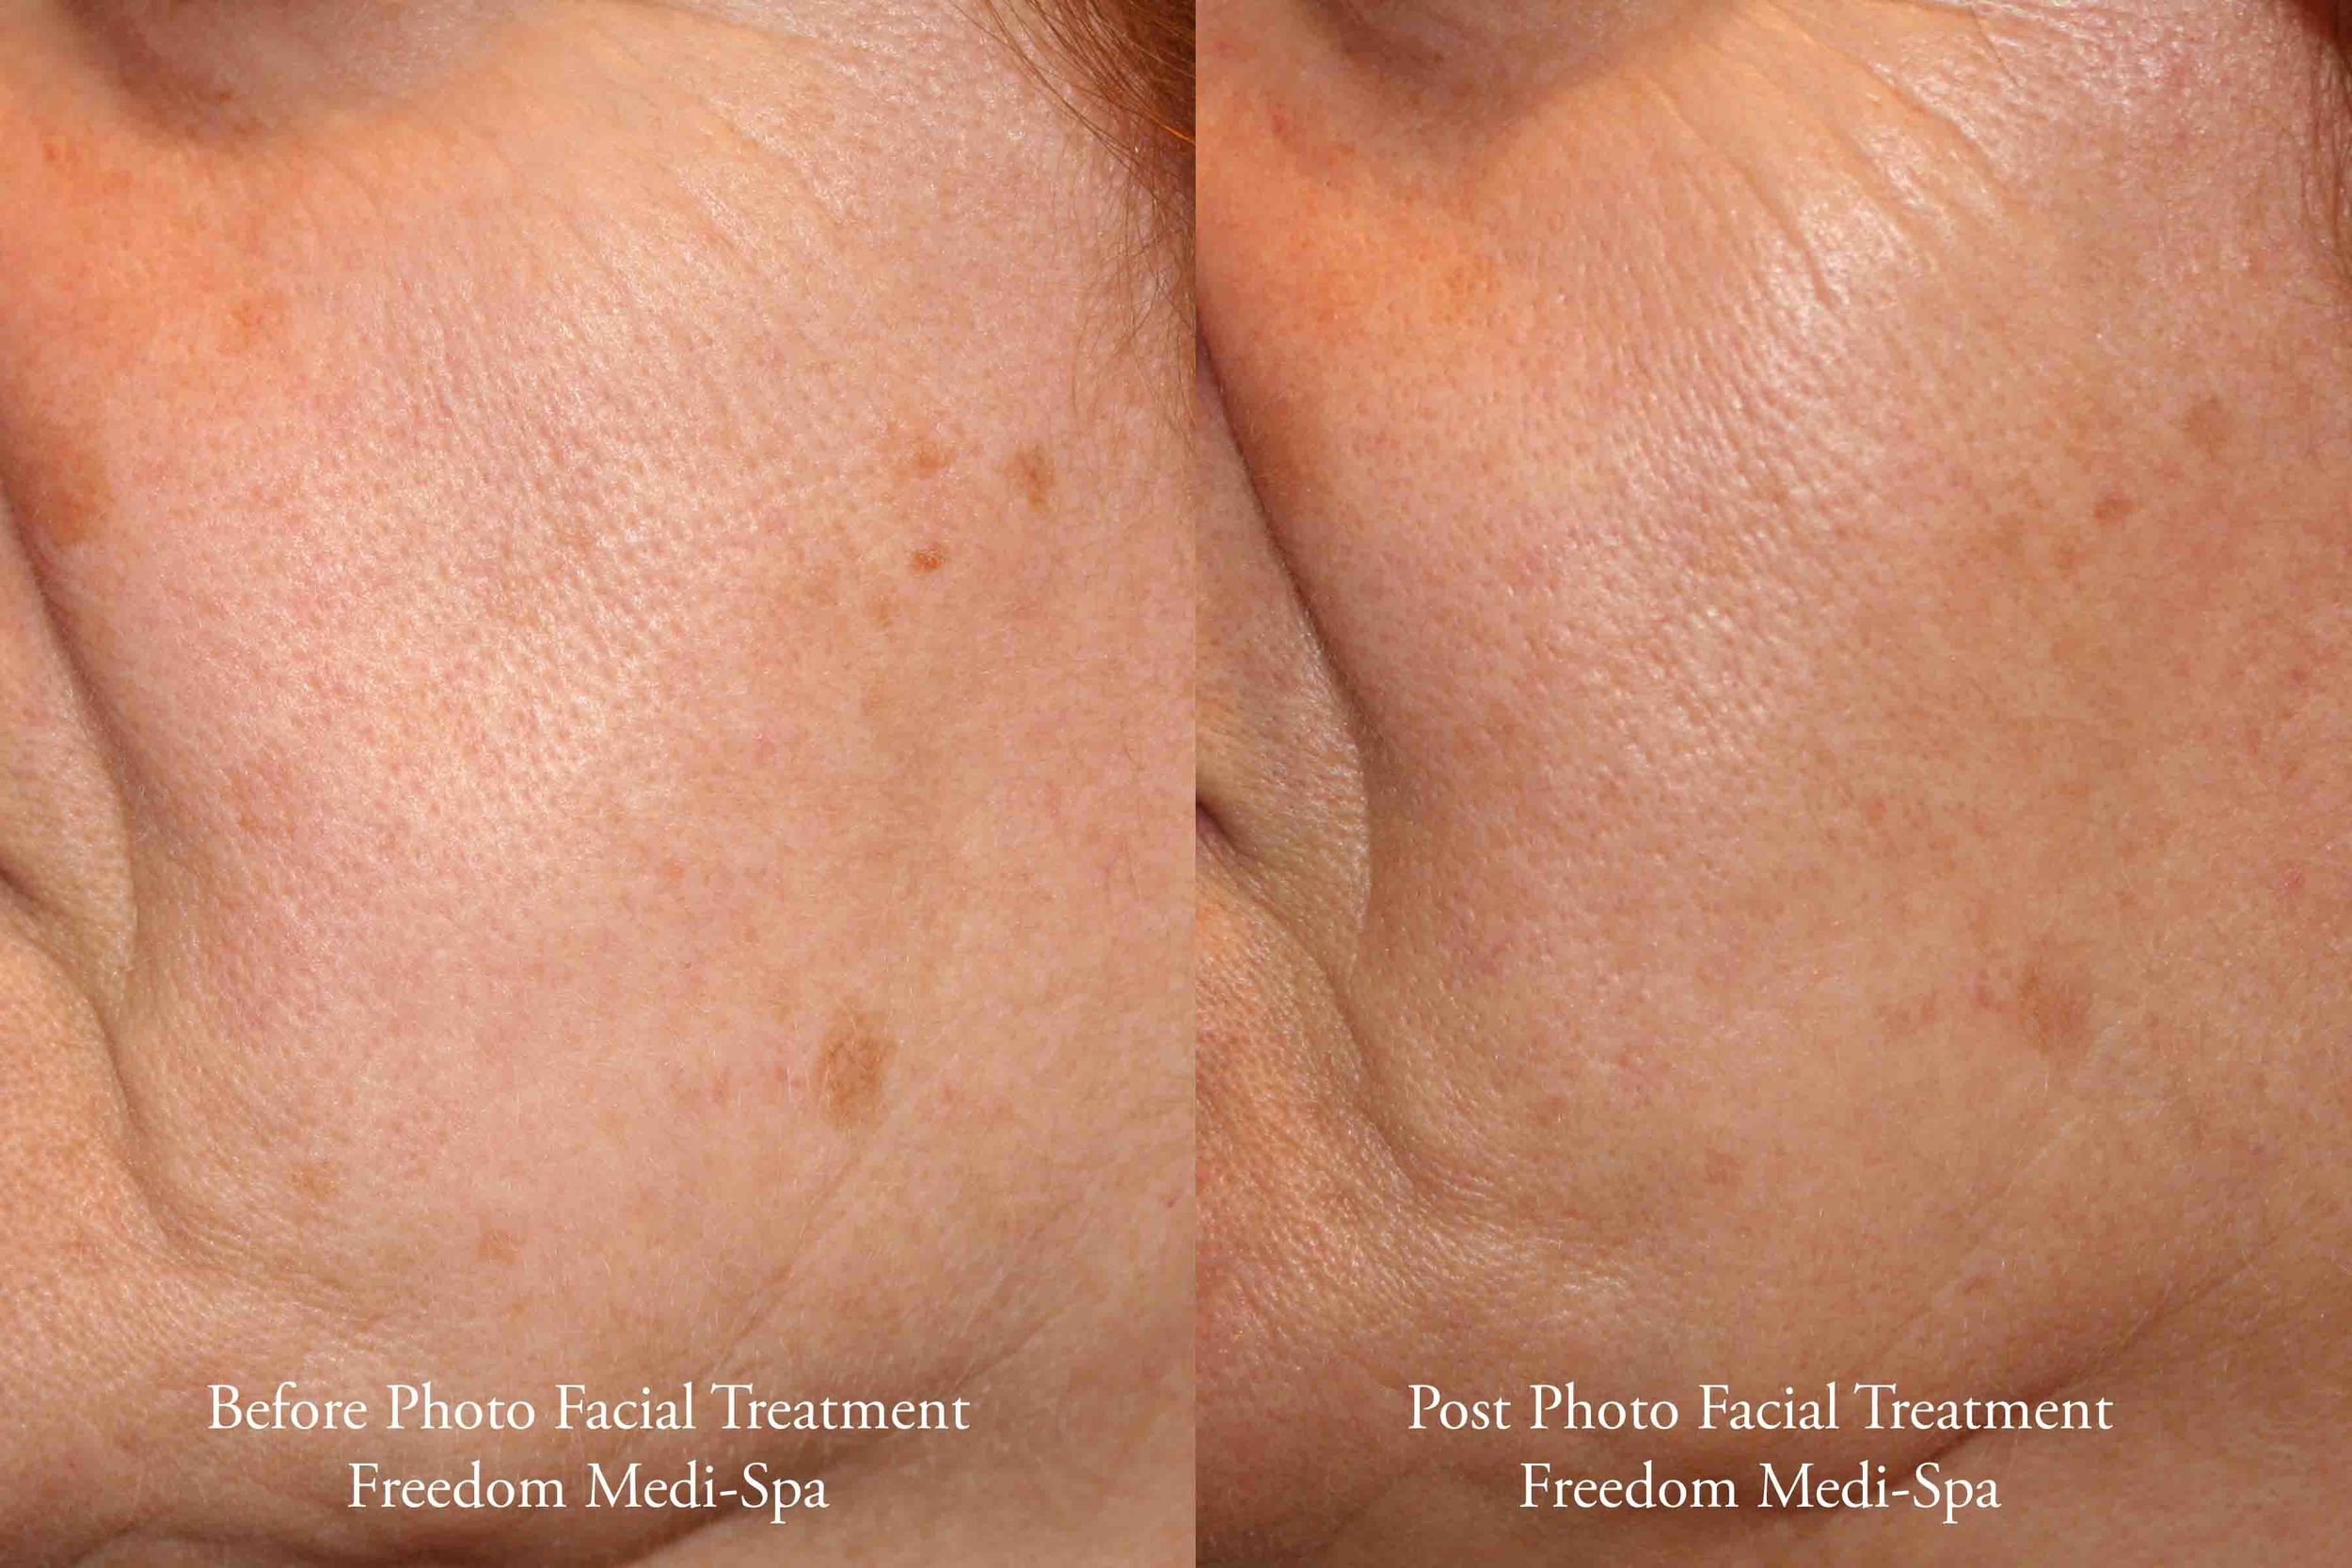 Before and After - Photo Facial for Sun Damage Pigment 2_edited-1.jpg